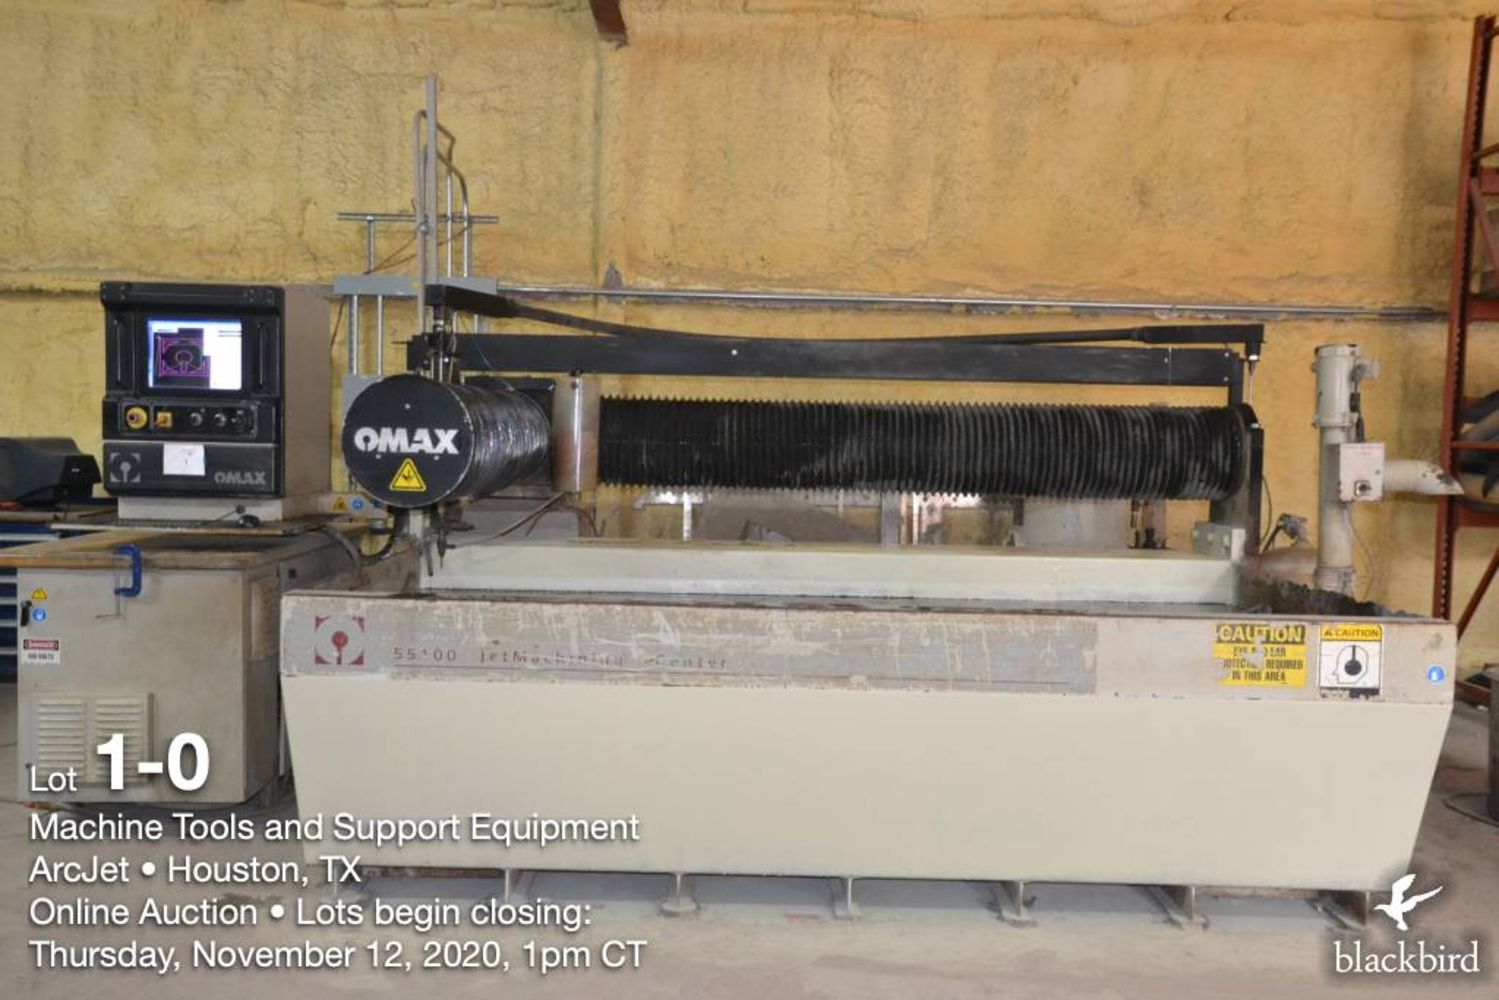 Machine Tools, Waterjet and support equipment - ARCJET CUTTING AND DESIGN - Houston, TX